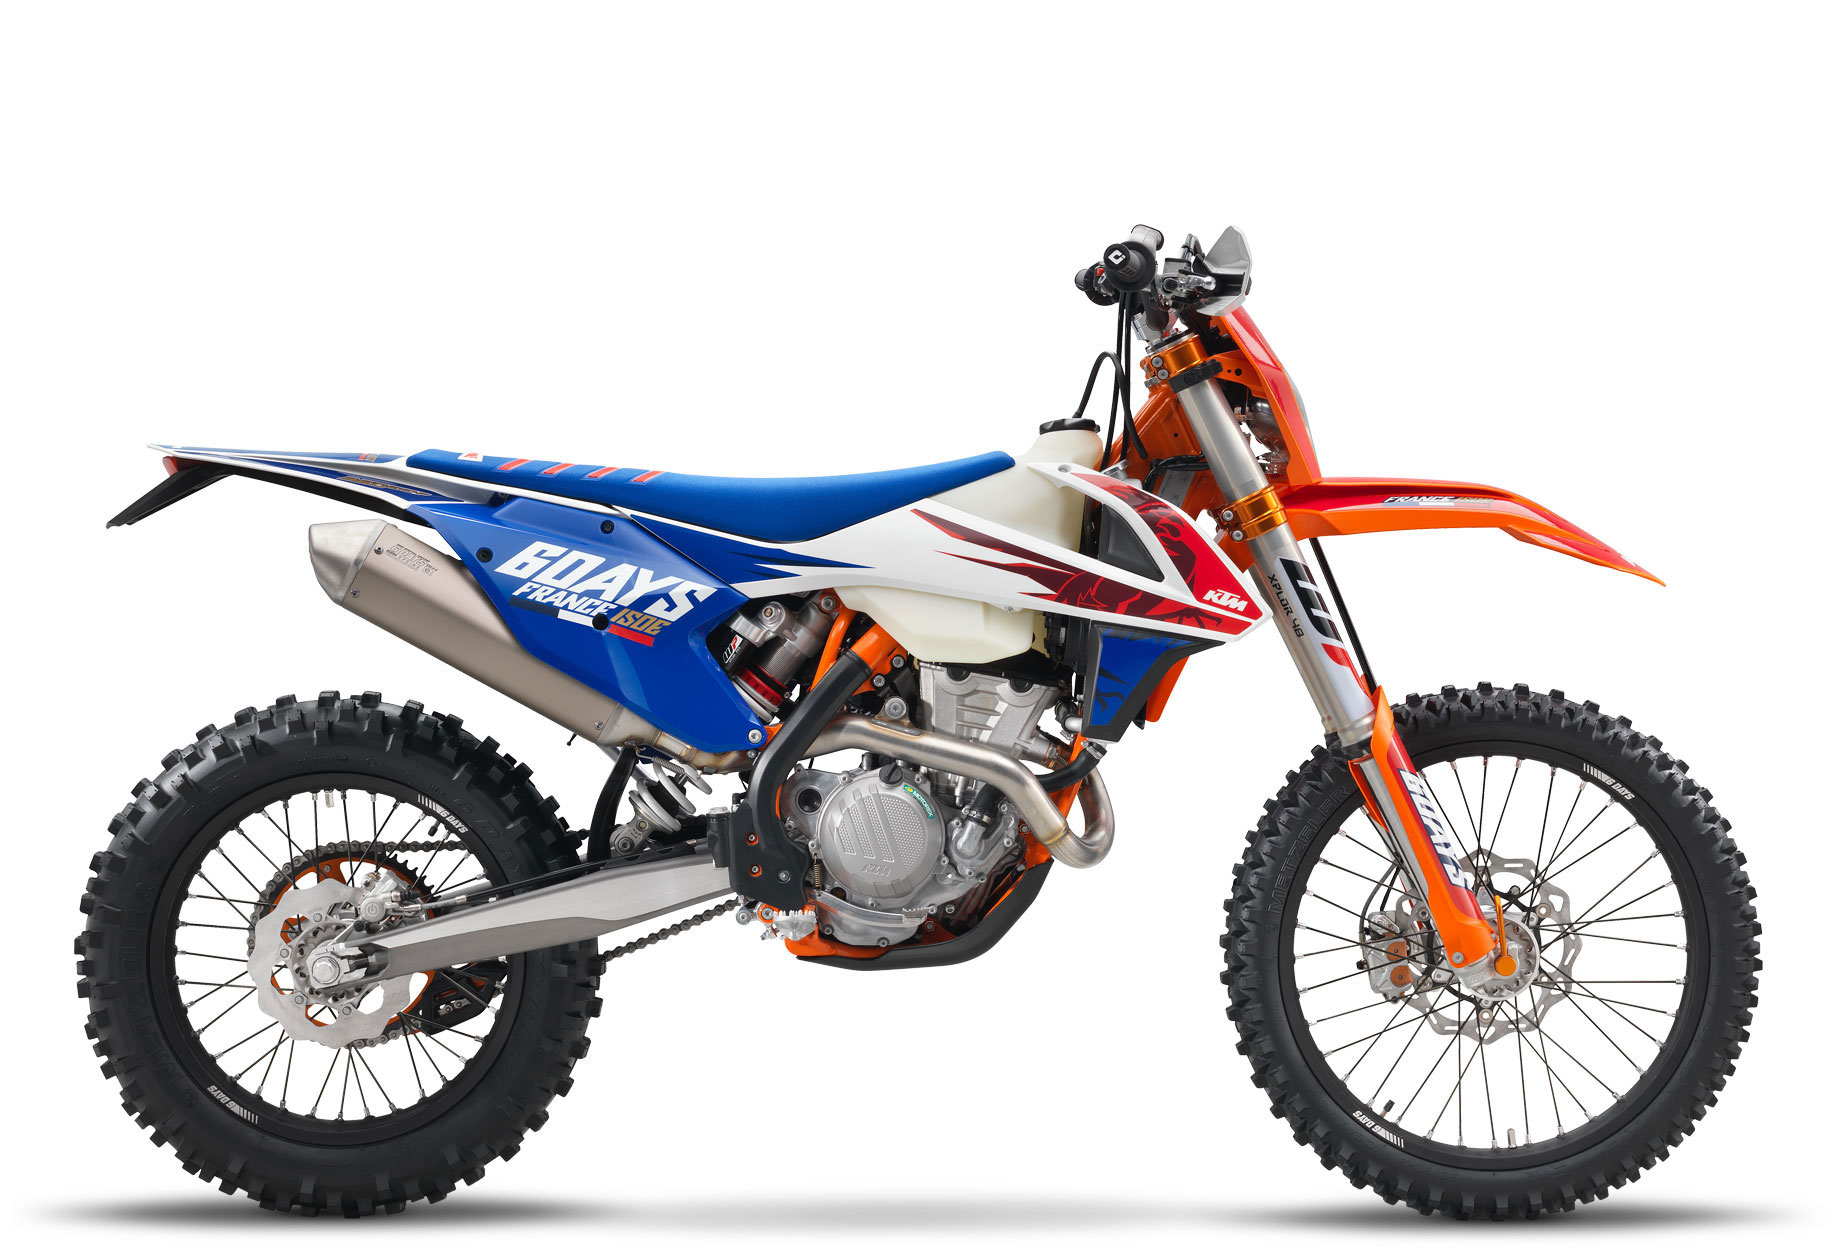 2018 ktm 450 exc f six days review totalmotorcycle. Black Bedroom Furniture Sets. Home Design Ideas